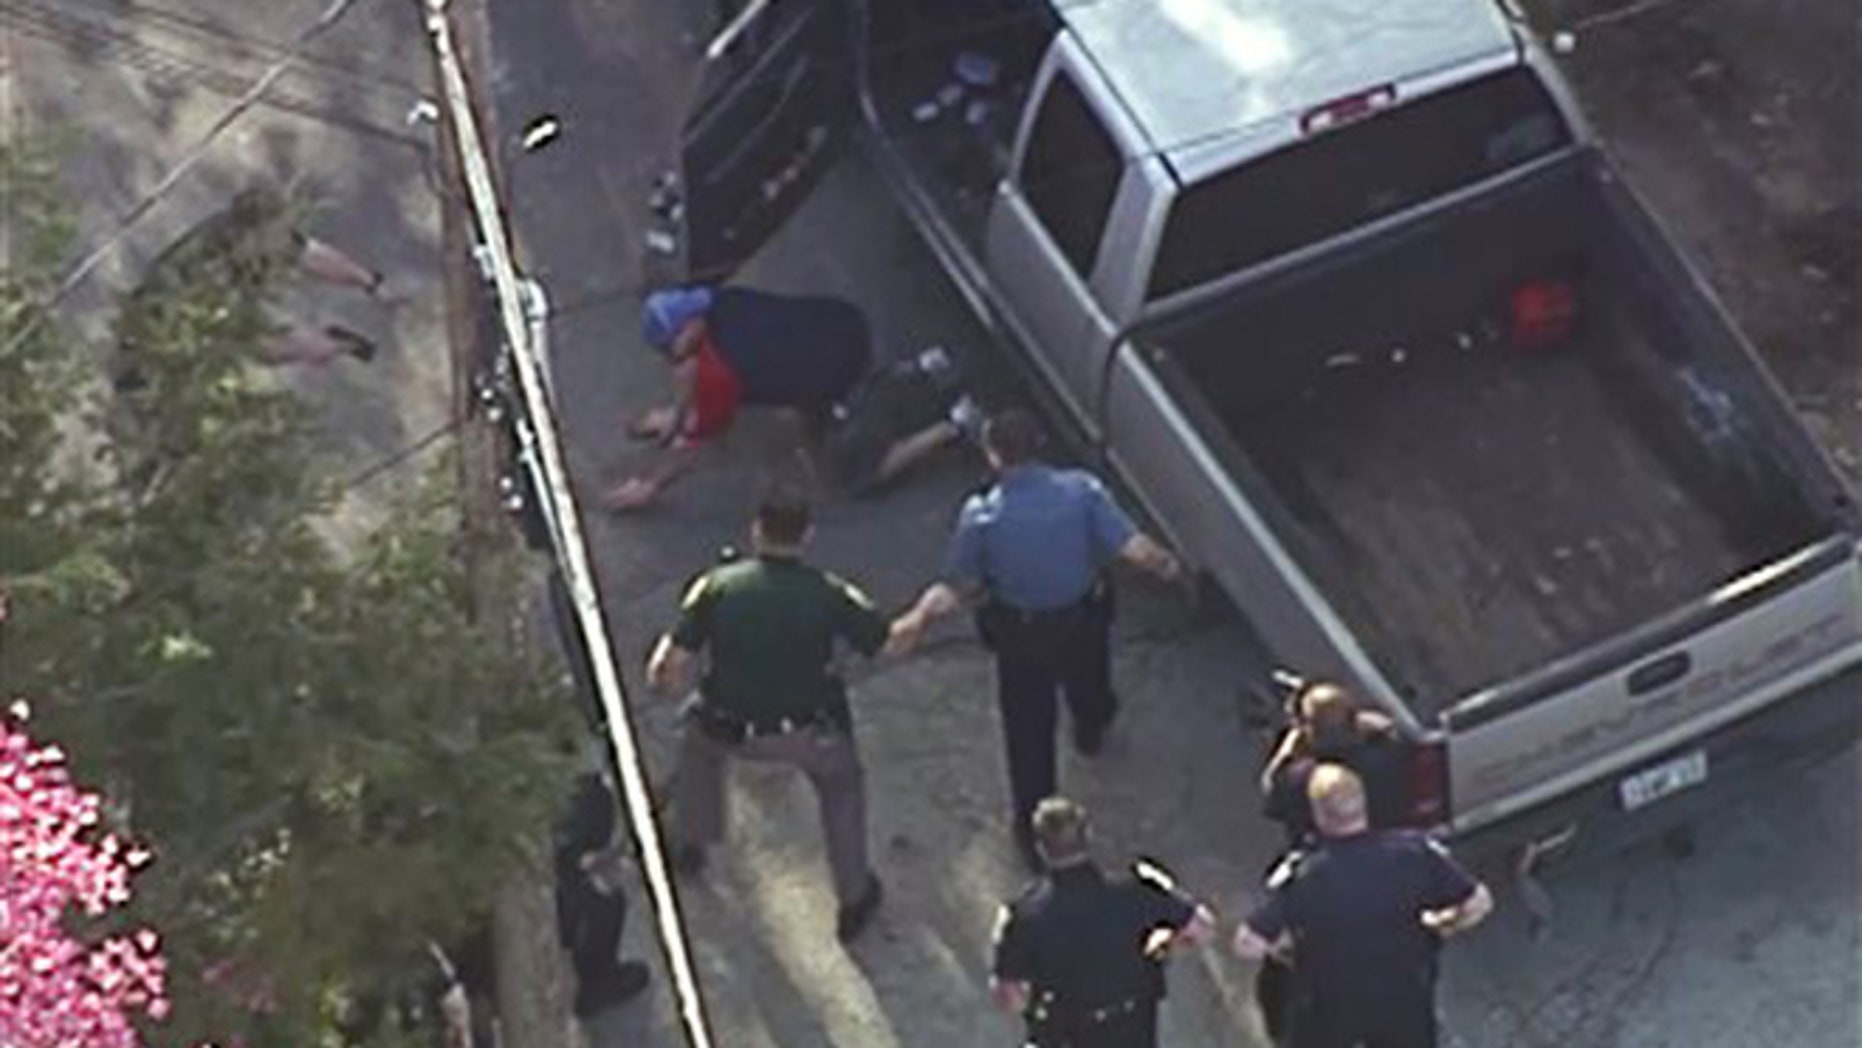 This aerial image made from a helicopter video provided by WHDH shows Richard Simone kneeling and putting his hands on the ground after a high-speed police pursuit in Nashua, N.H., Wednesday, May 11, 2016.